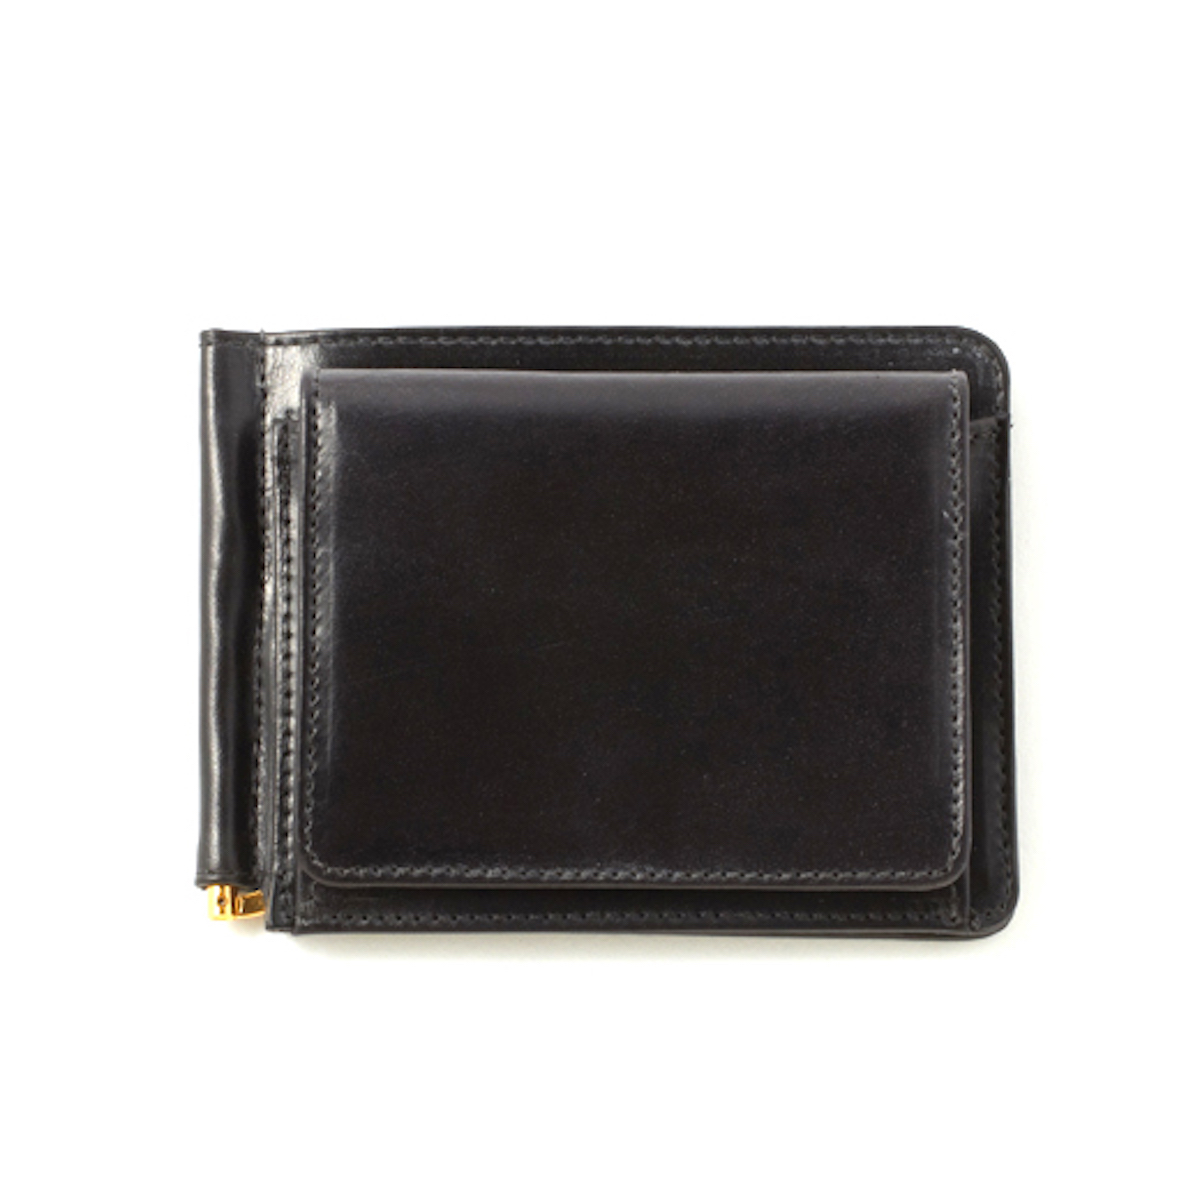 GLENROYAL / MONEY CLIP WITH COIN POCKET -NEW BLACK